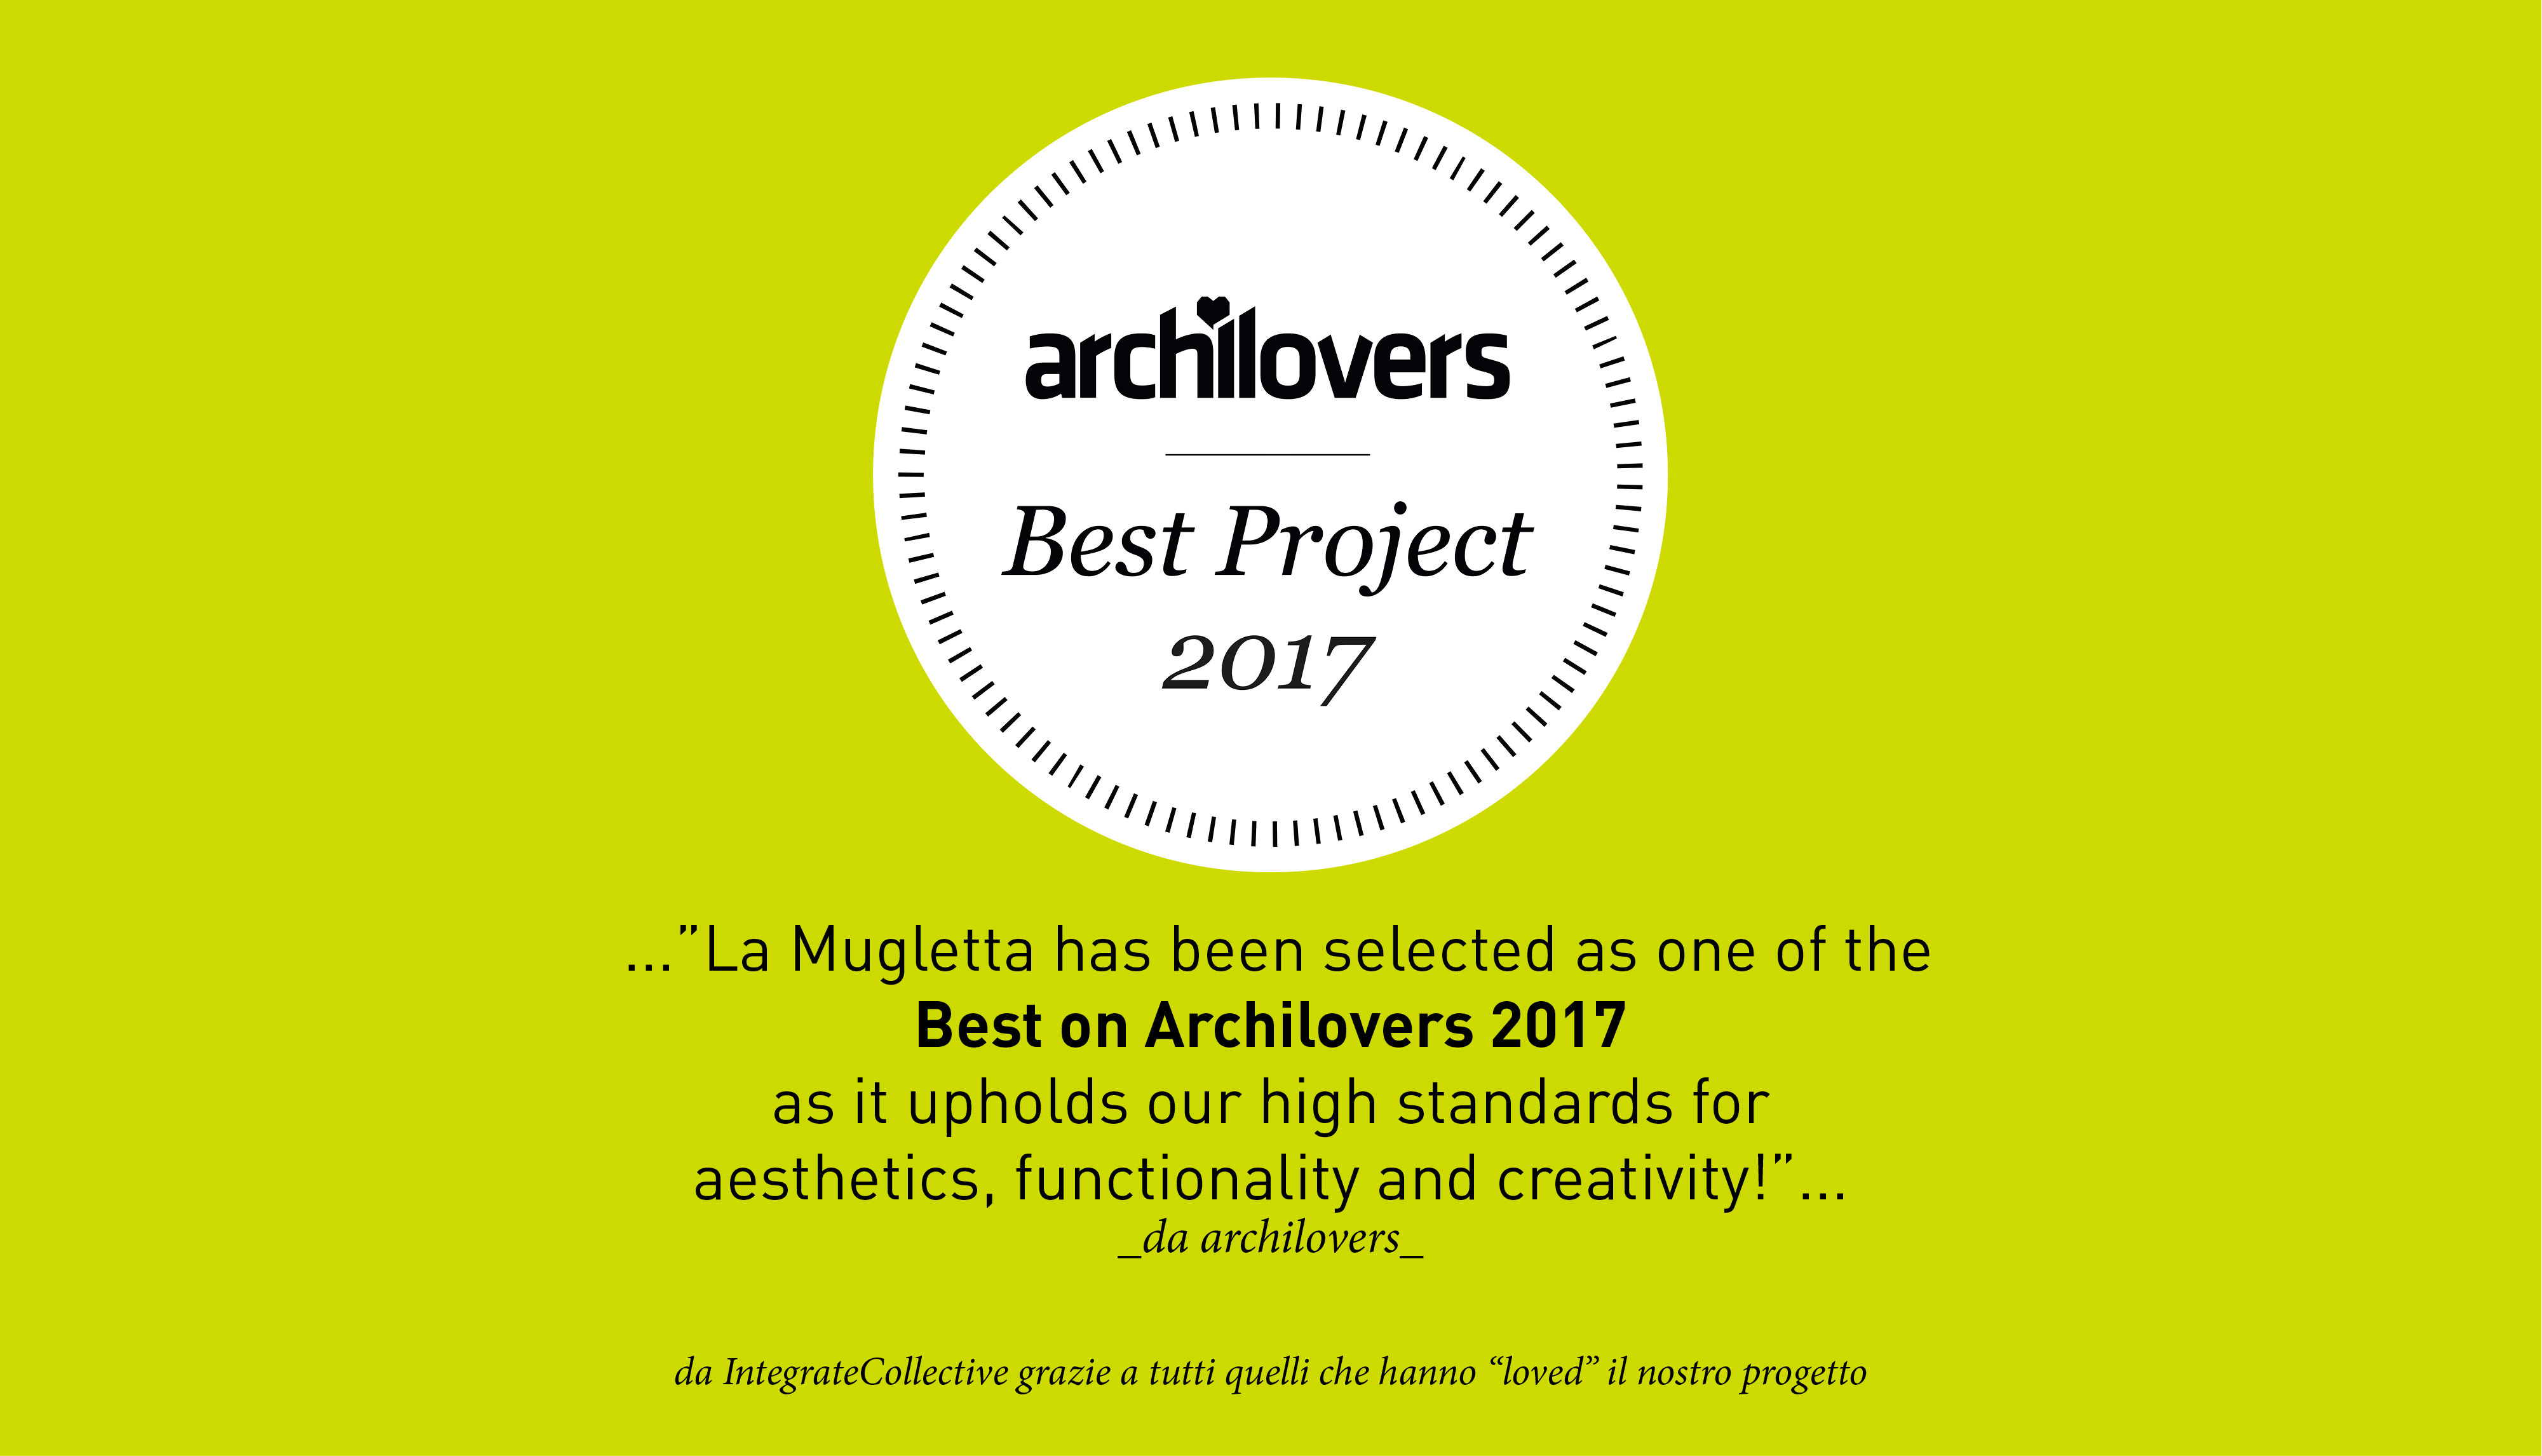 premio archilovers